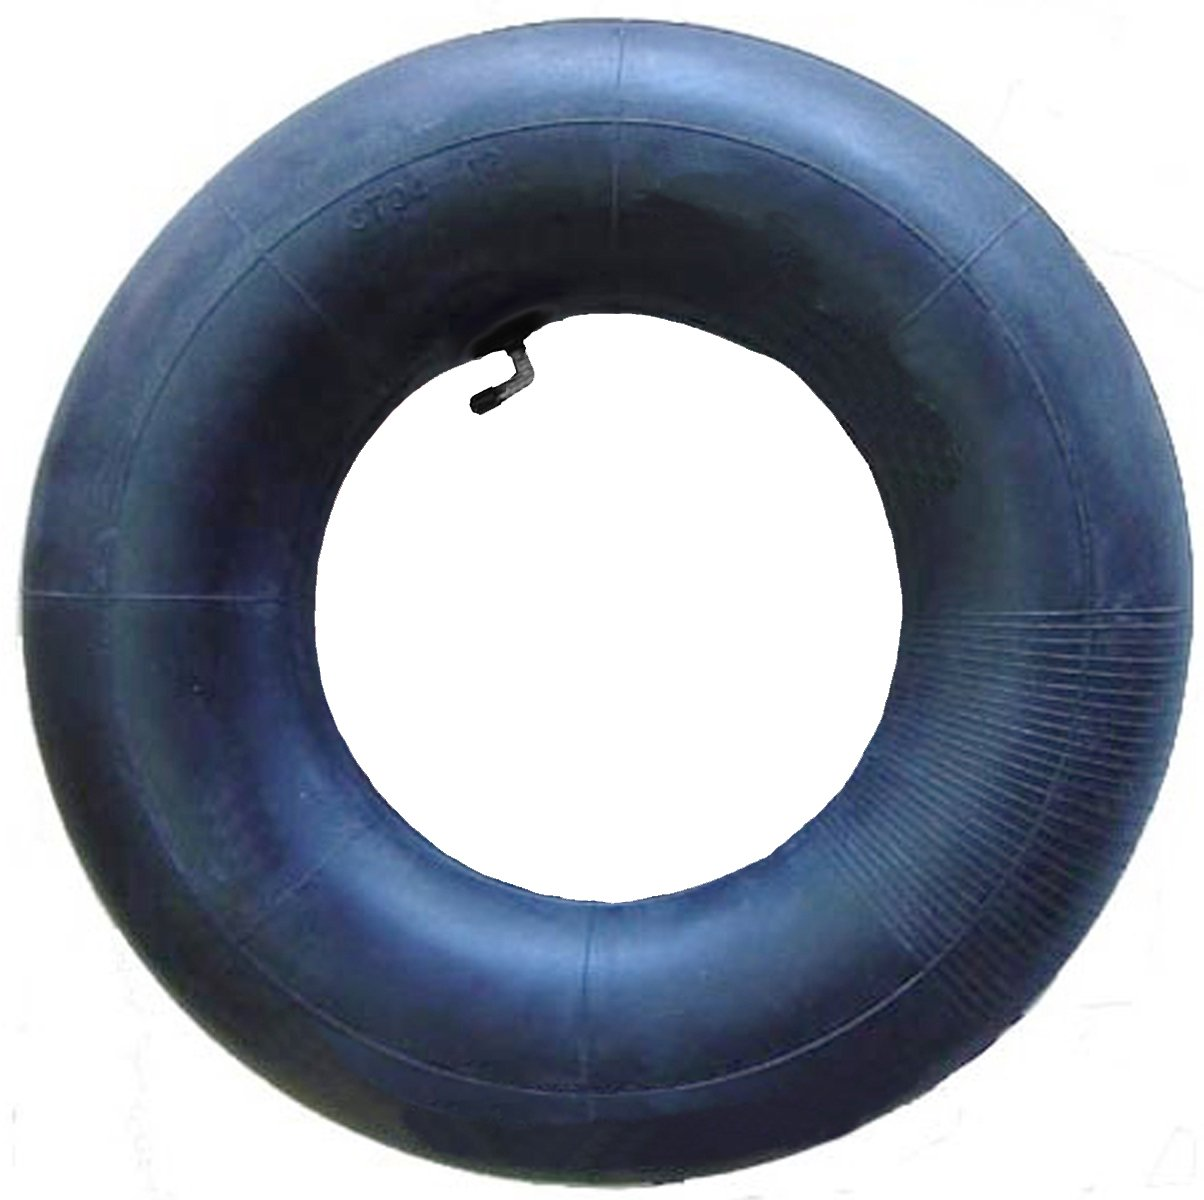 Maxpower 335483 Replacement Tire Inner Tube 15 x 600 x 6 with L-Shaped Valve Stem